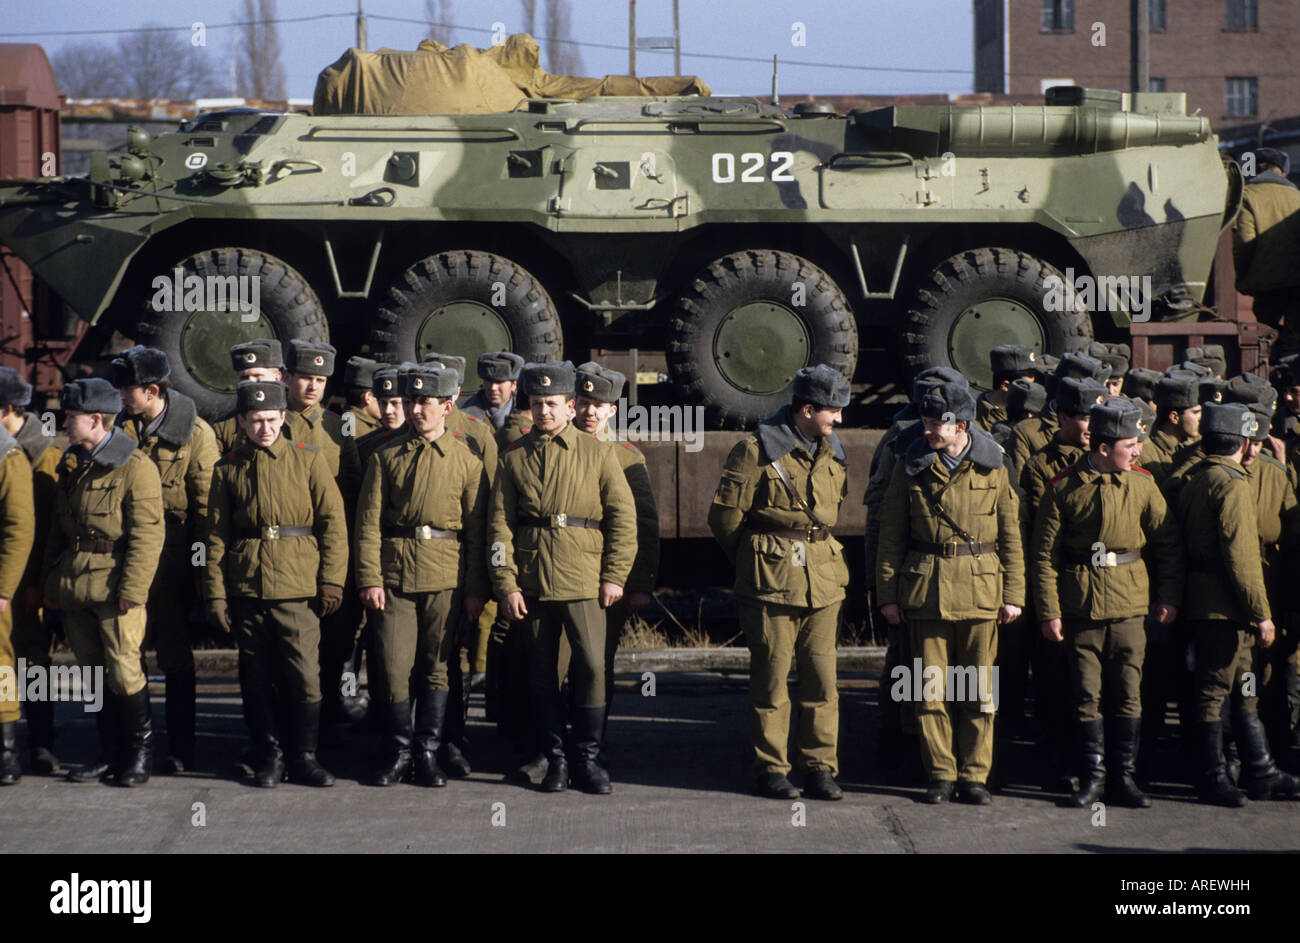 Soviet Armed Forces / Soviet Army (1946-1991) - Page 5 Russian-soldiers-stand-in-front-of-armoured-vehicles-on-a-train-during-AREWHH